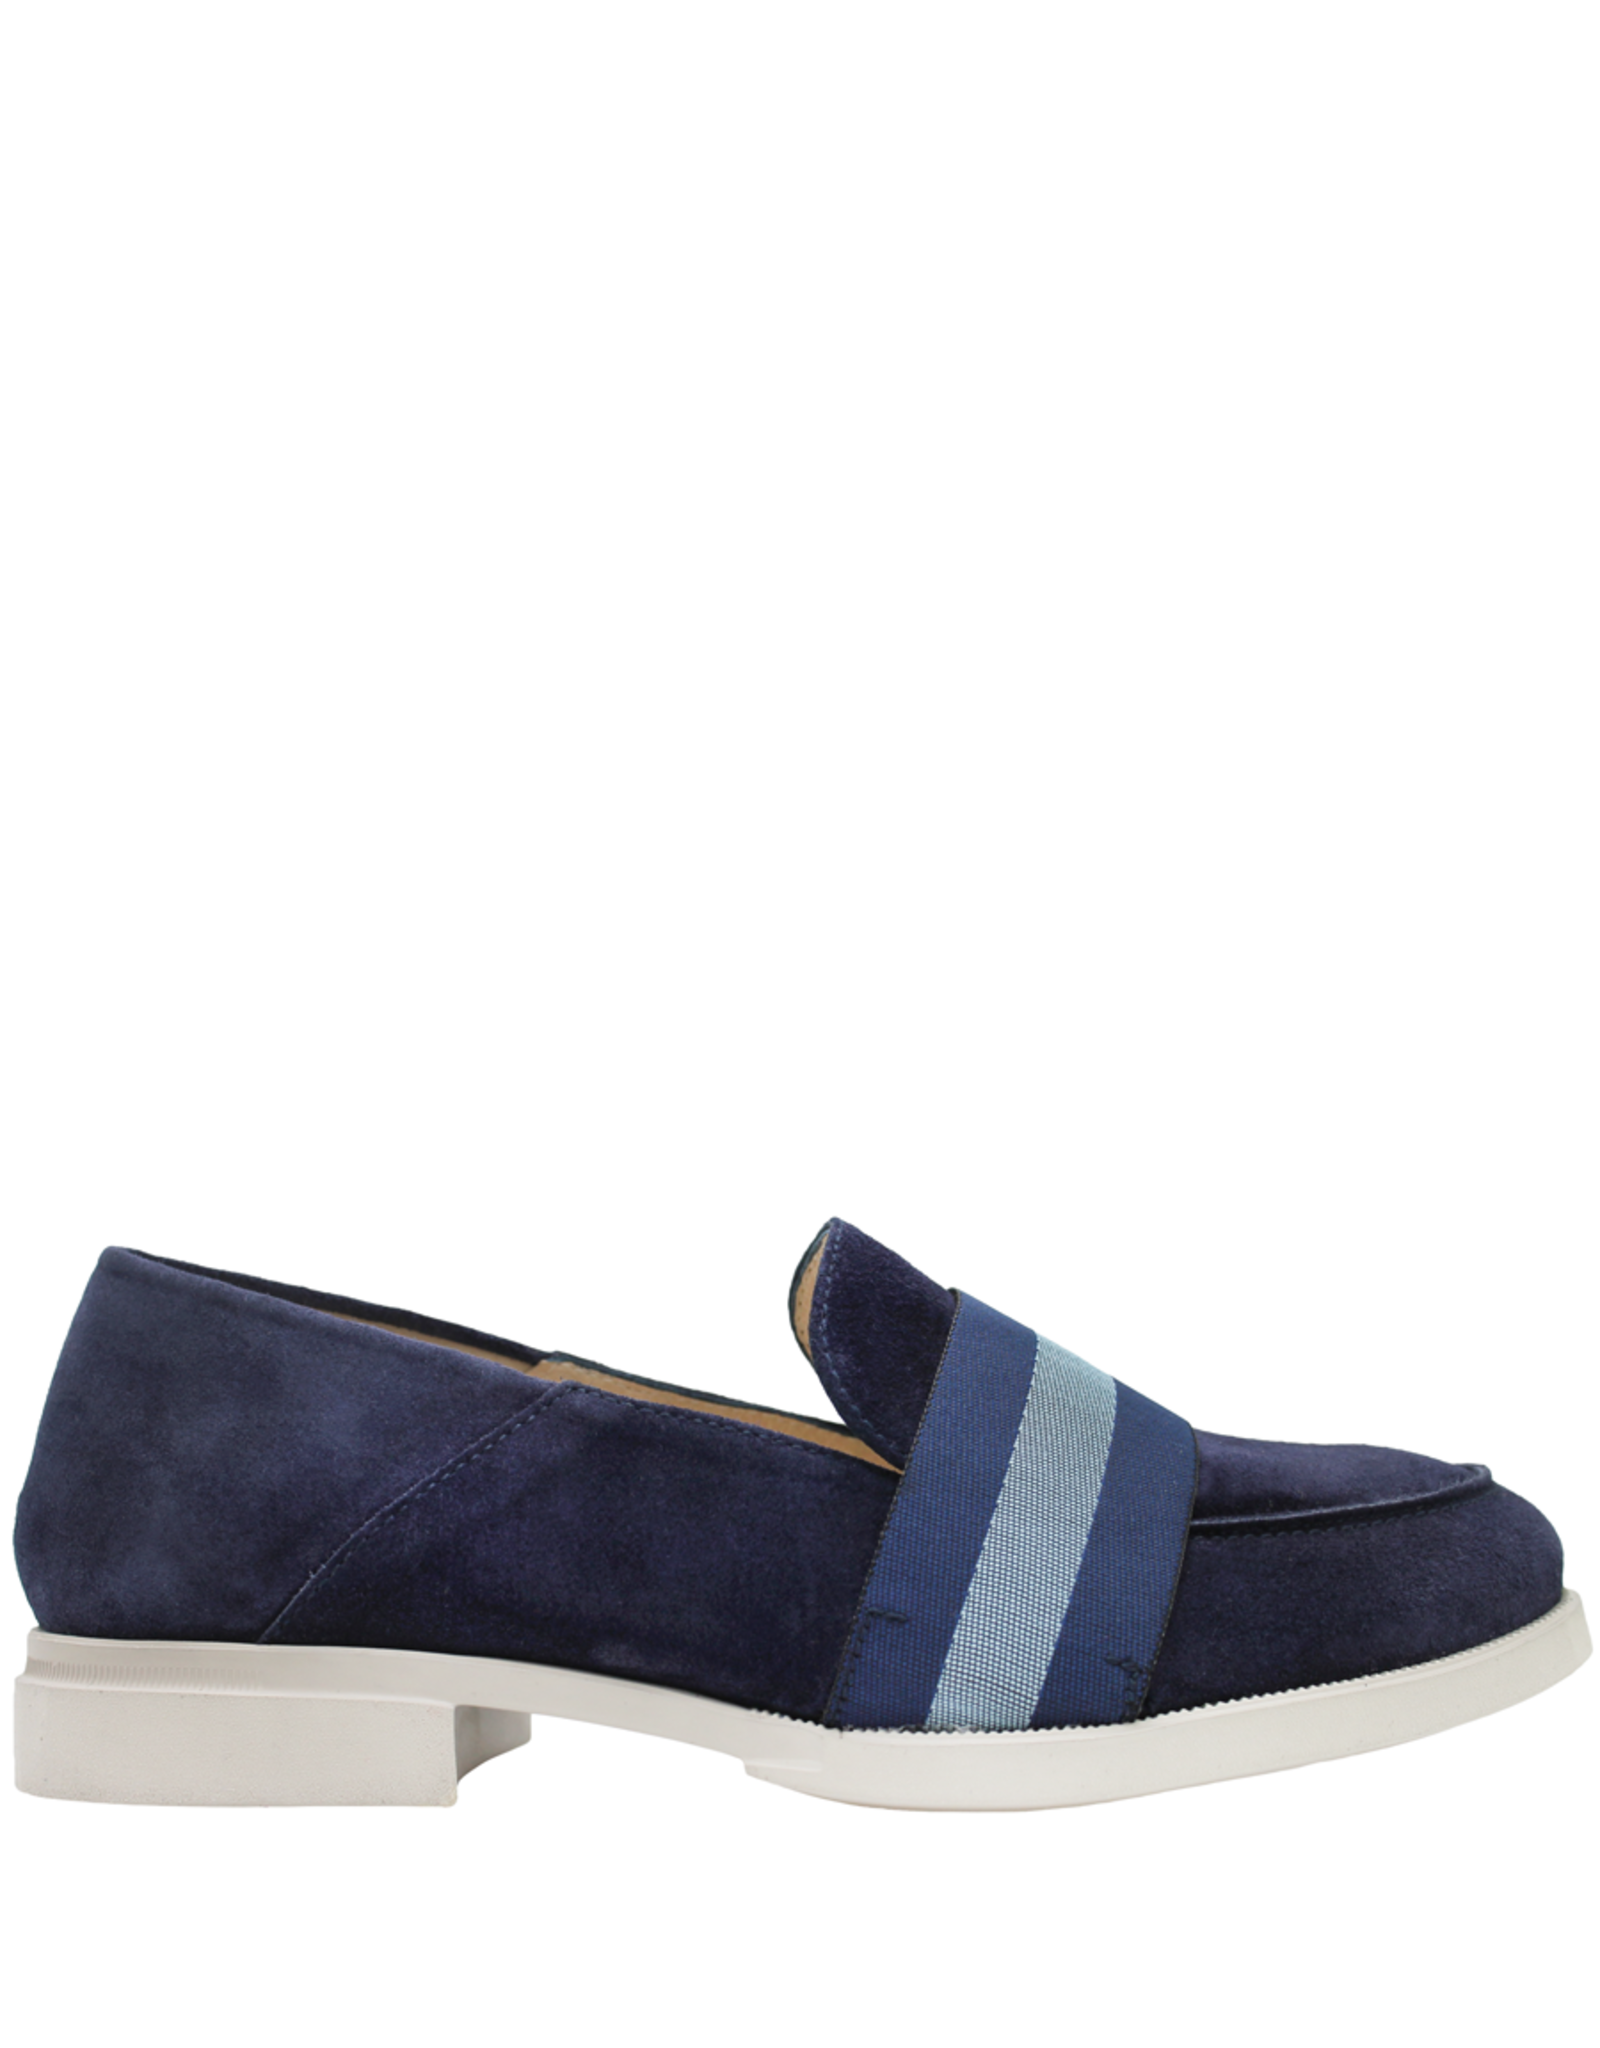 Gadea Gadea Blue Suede Loafer Blue Ribbon Detail 5134